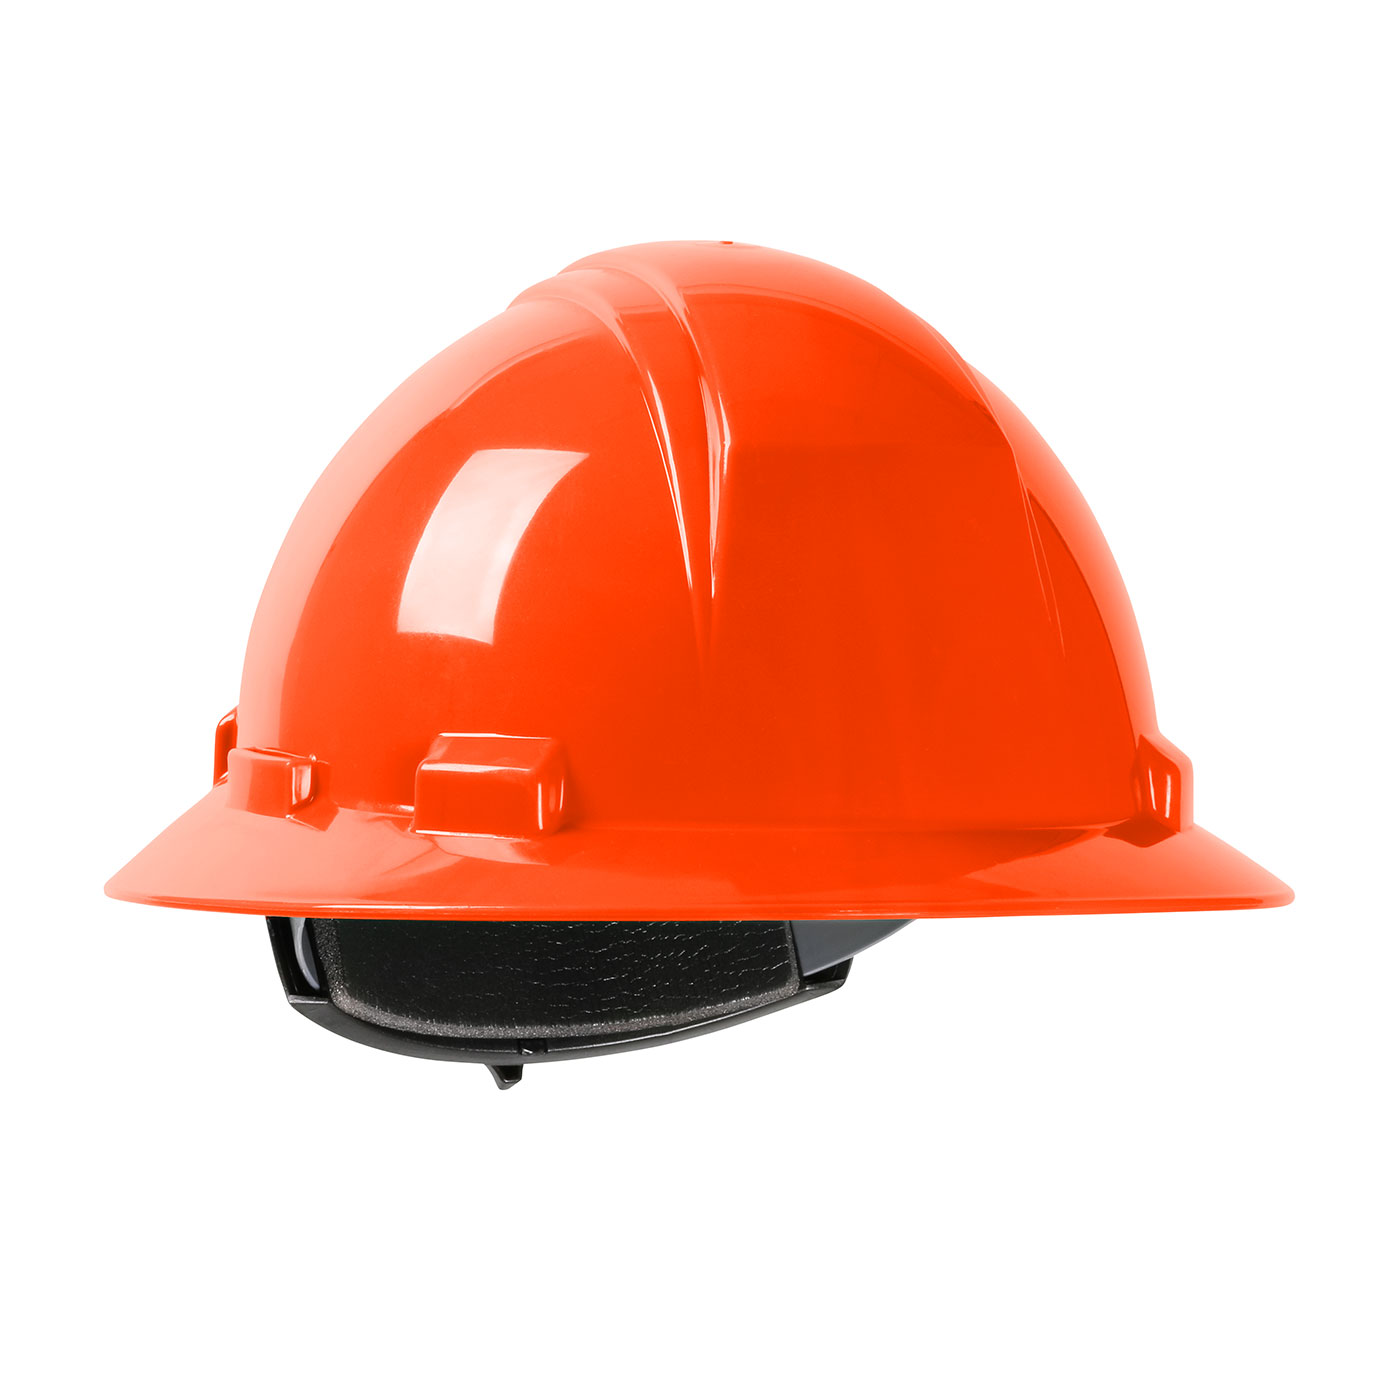 280-HP261R PIP® Dynamic Kilimanjaro™ Full Brim Hard Hat with HDPE Shell, 4-Point Textile Suspension and Wheel Ratchet Adjustment - Orange